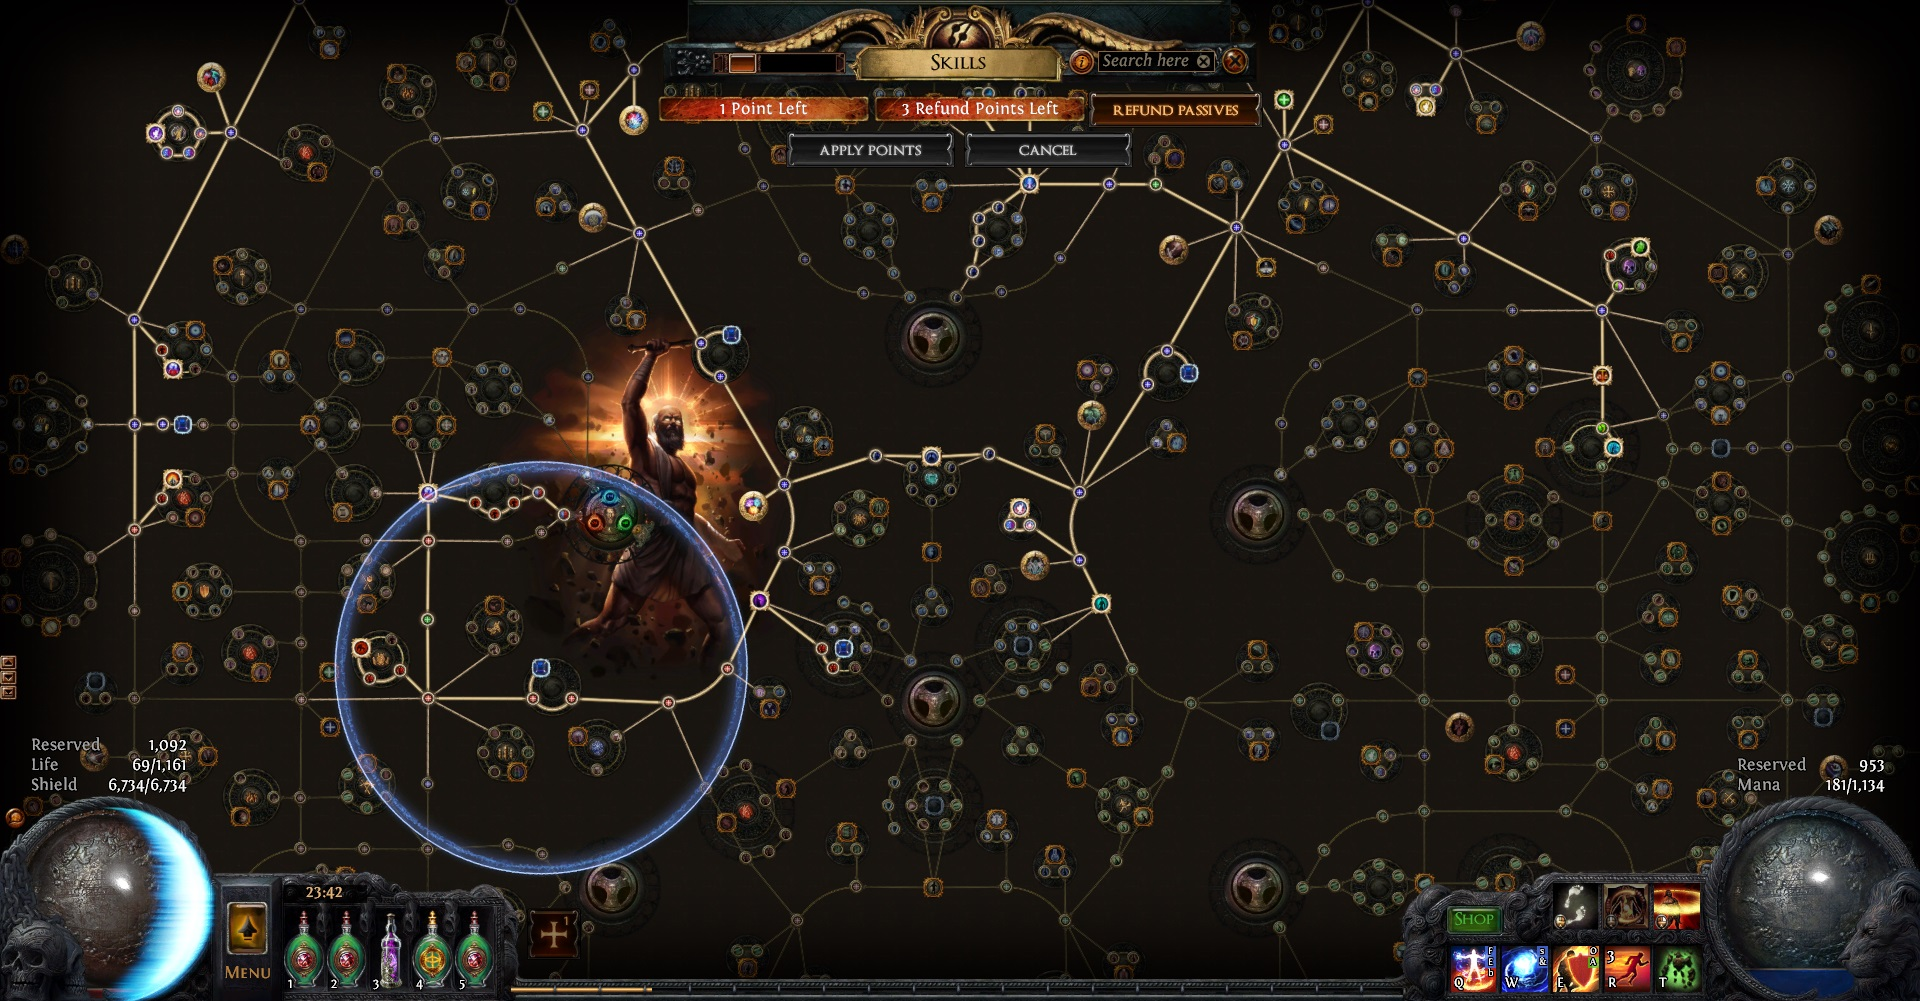 Example of a character build in Path of Exile's massive skill tree.